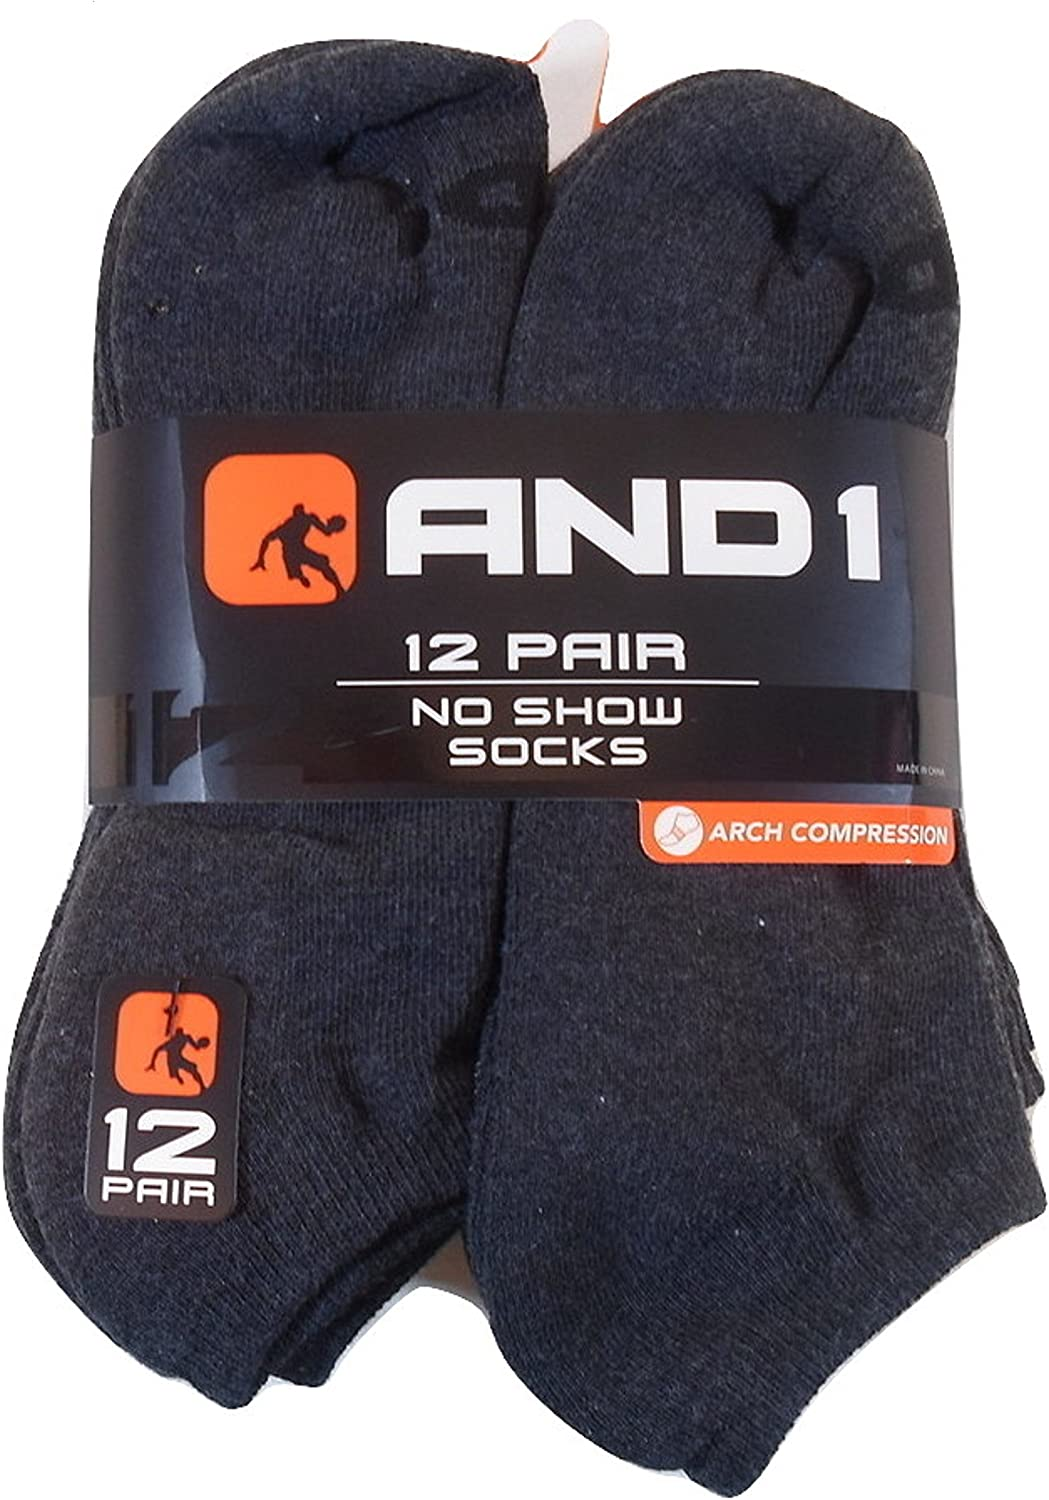 12 PAIRS AND1 Long Crew Socks Shoe Sz 6-12.5  AND 1 Gray Grey Arch Compression